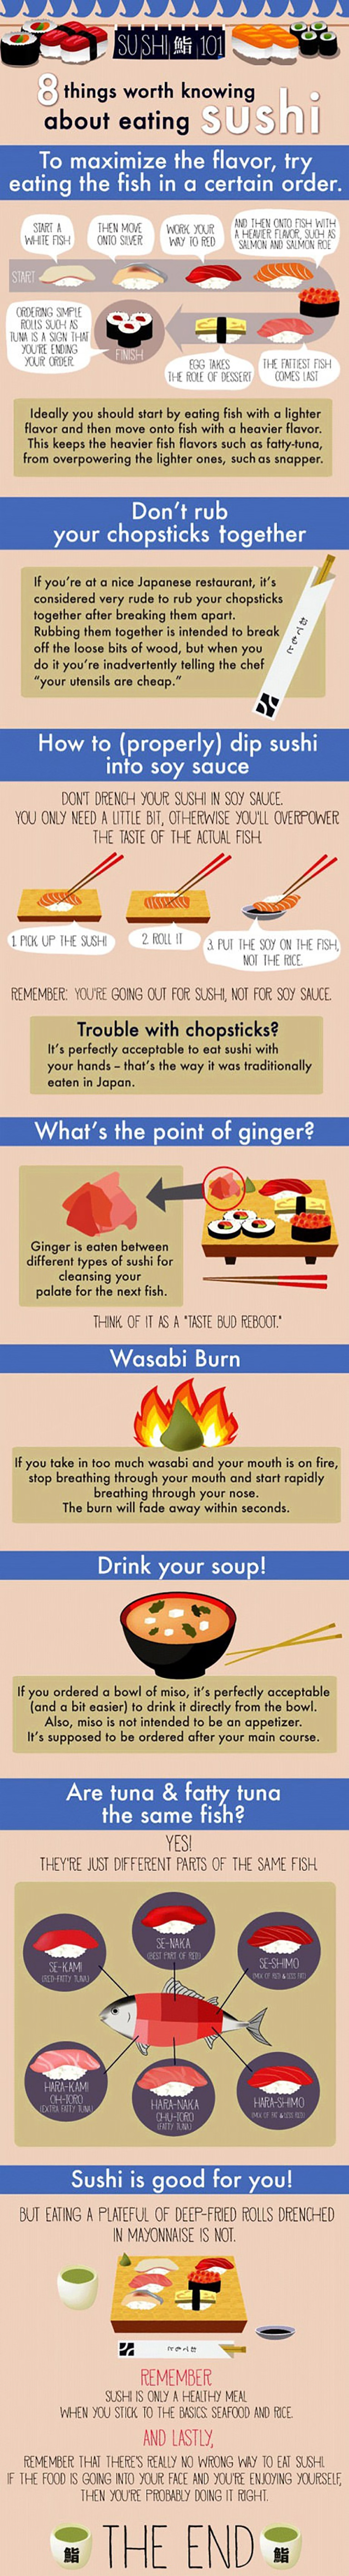 8-things-about-sushi-1